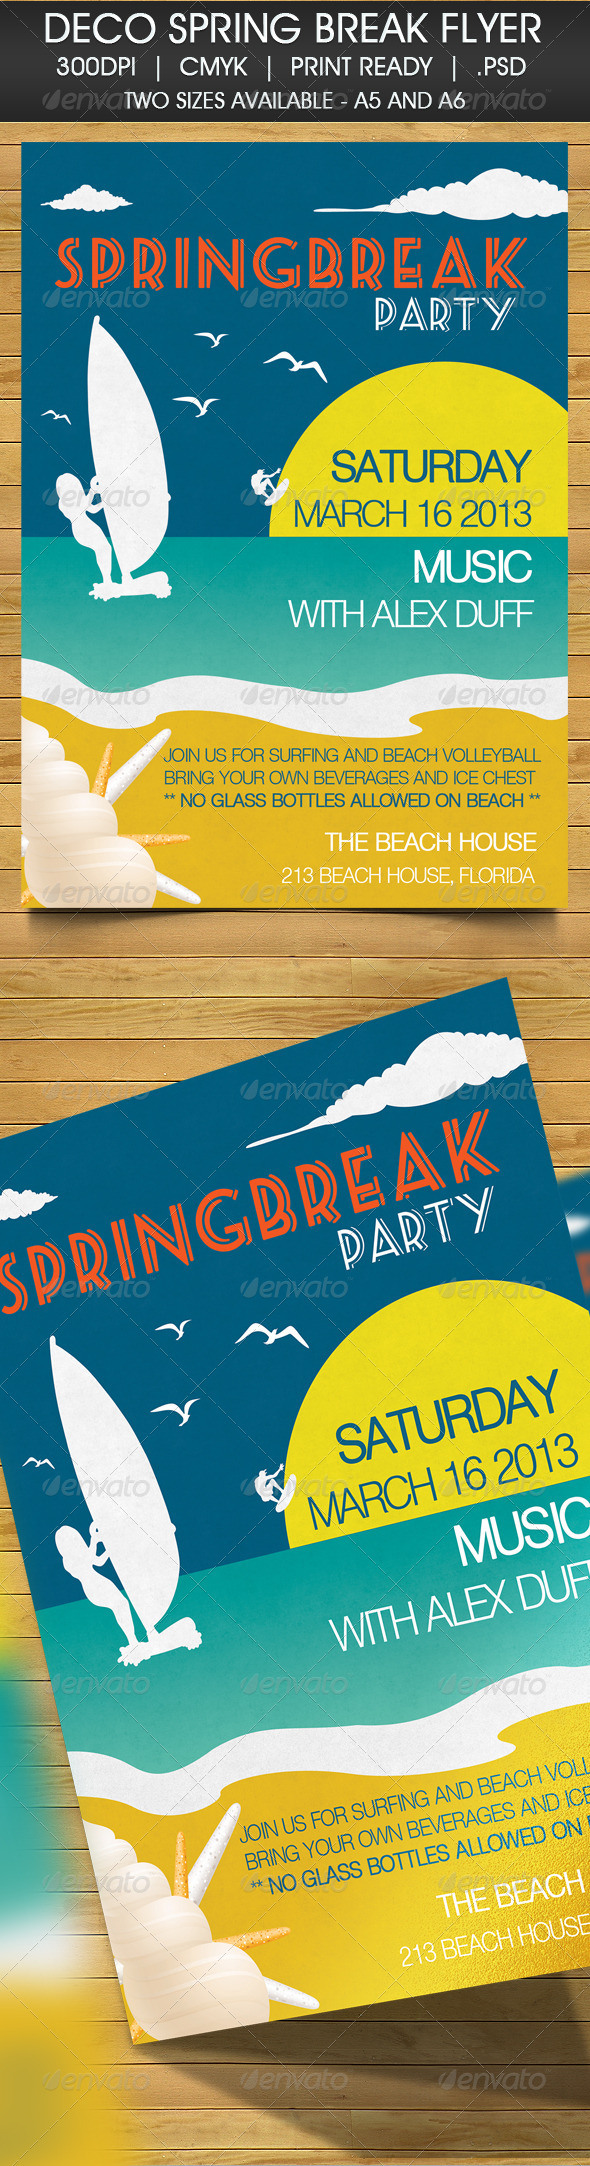 Deco Spring Break Beach Party Invitation - Cards & Invites Print Templates